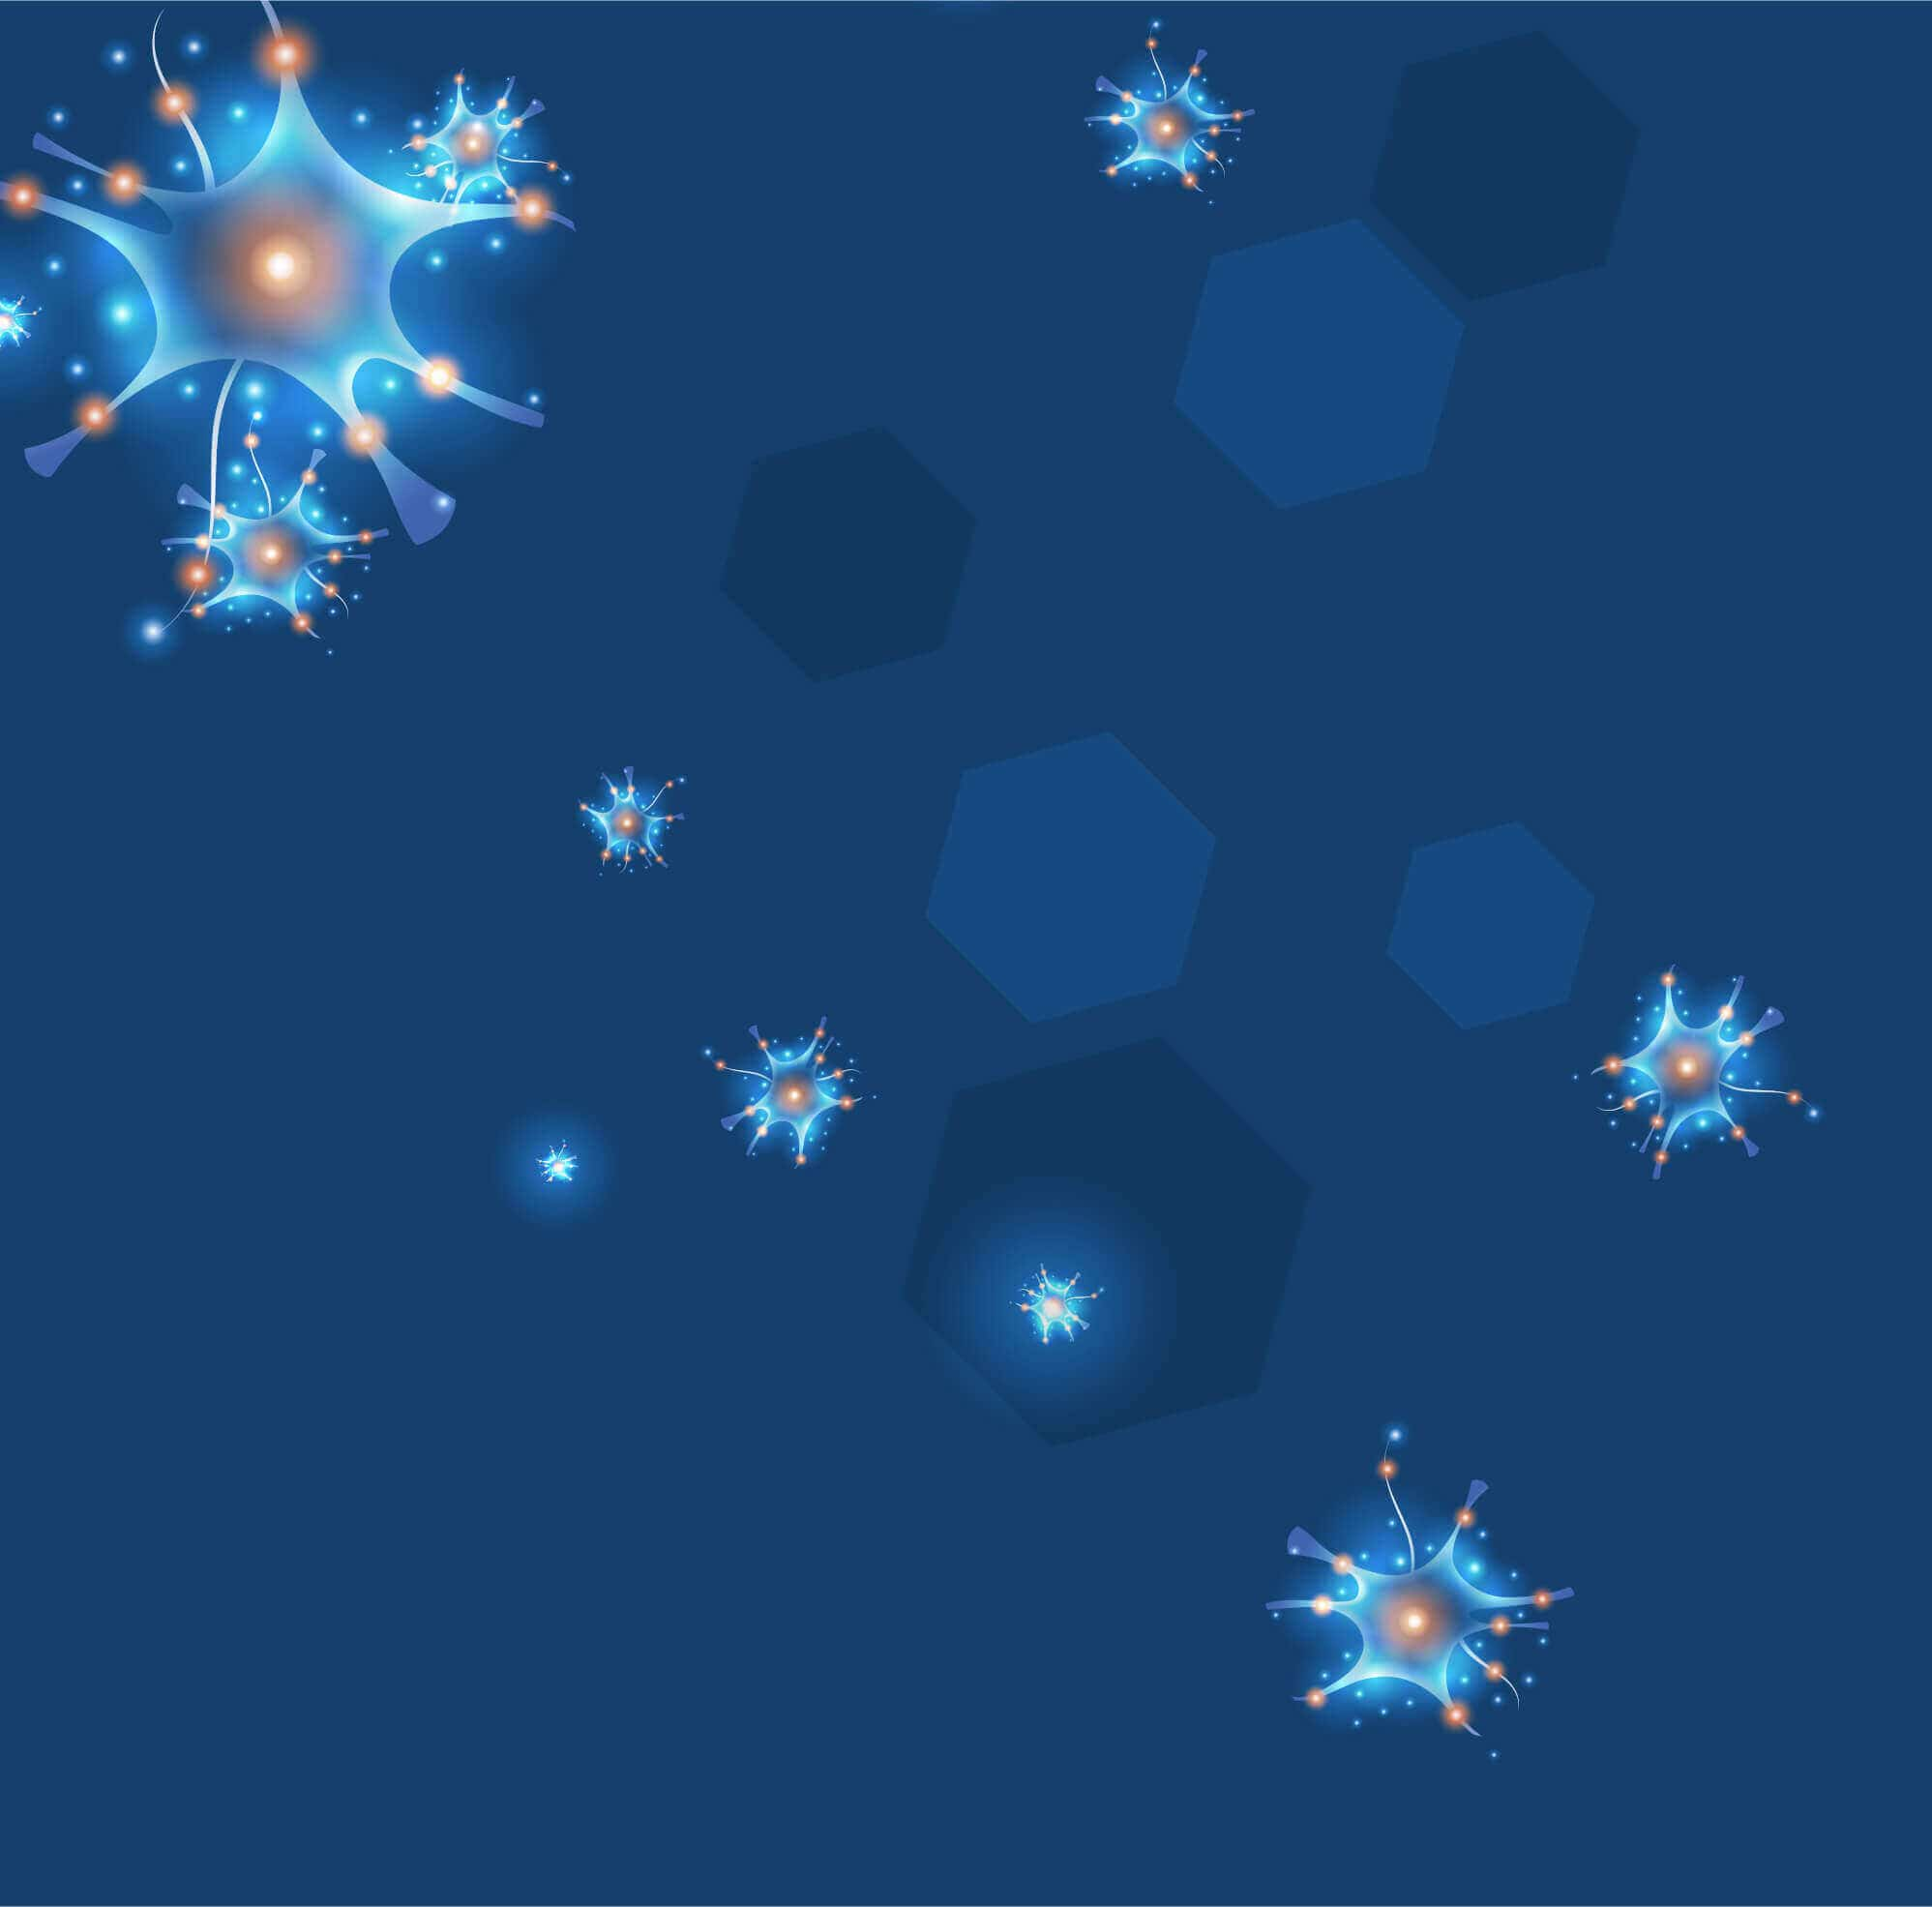 blue-background-with-neurons